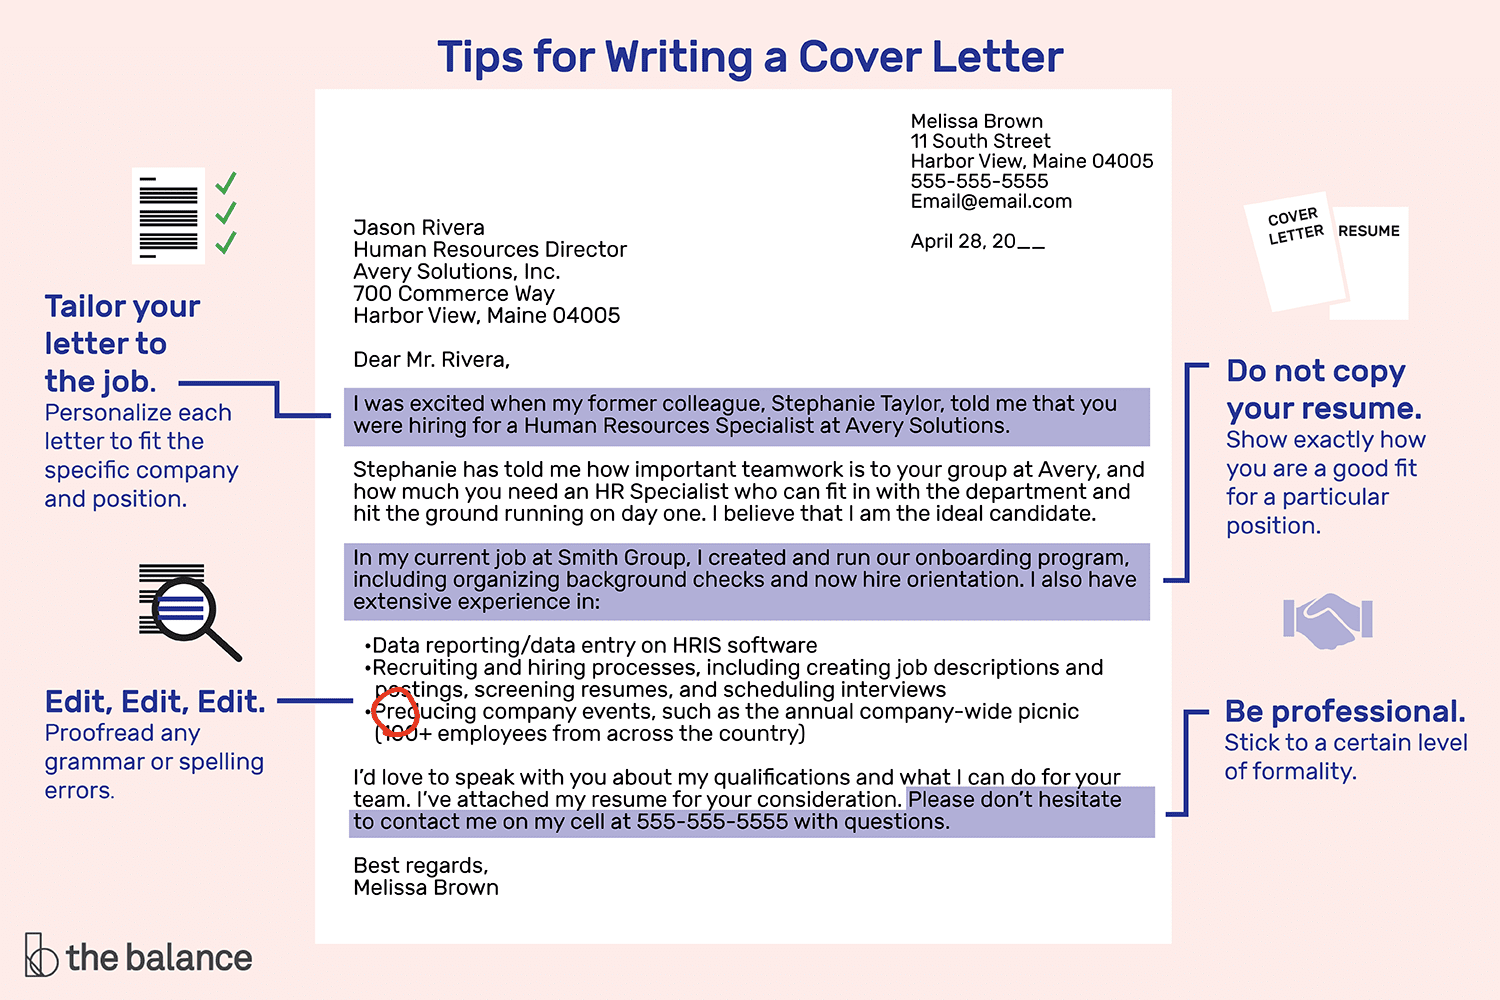 follow the proper business letter format